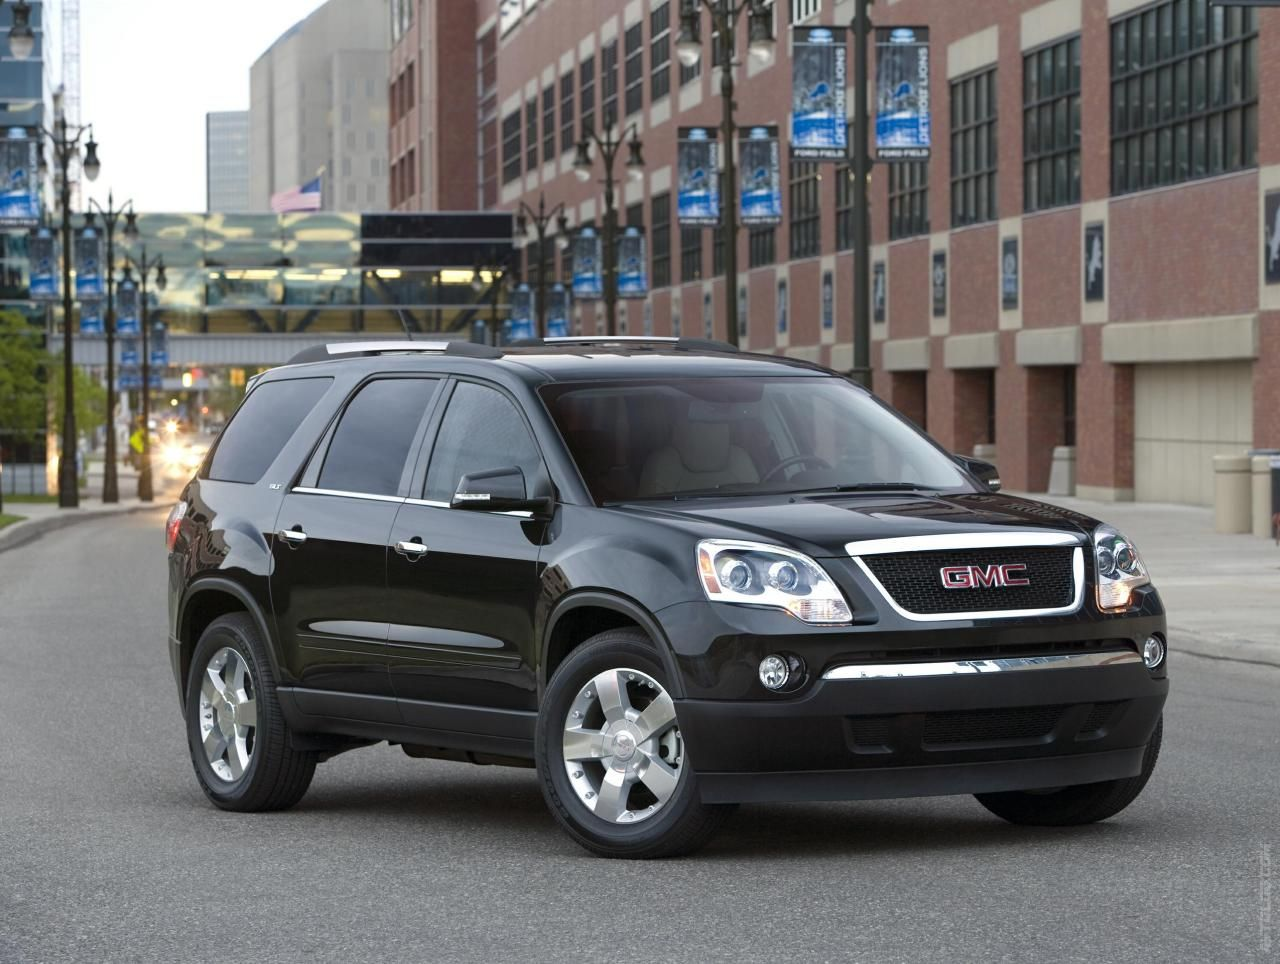 2016 gmc acadia 2016 gmc acadia is a suv that will redesign arrives in the market compared with the previous model acadia is a method that has b